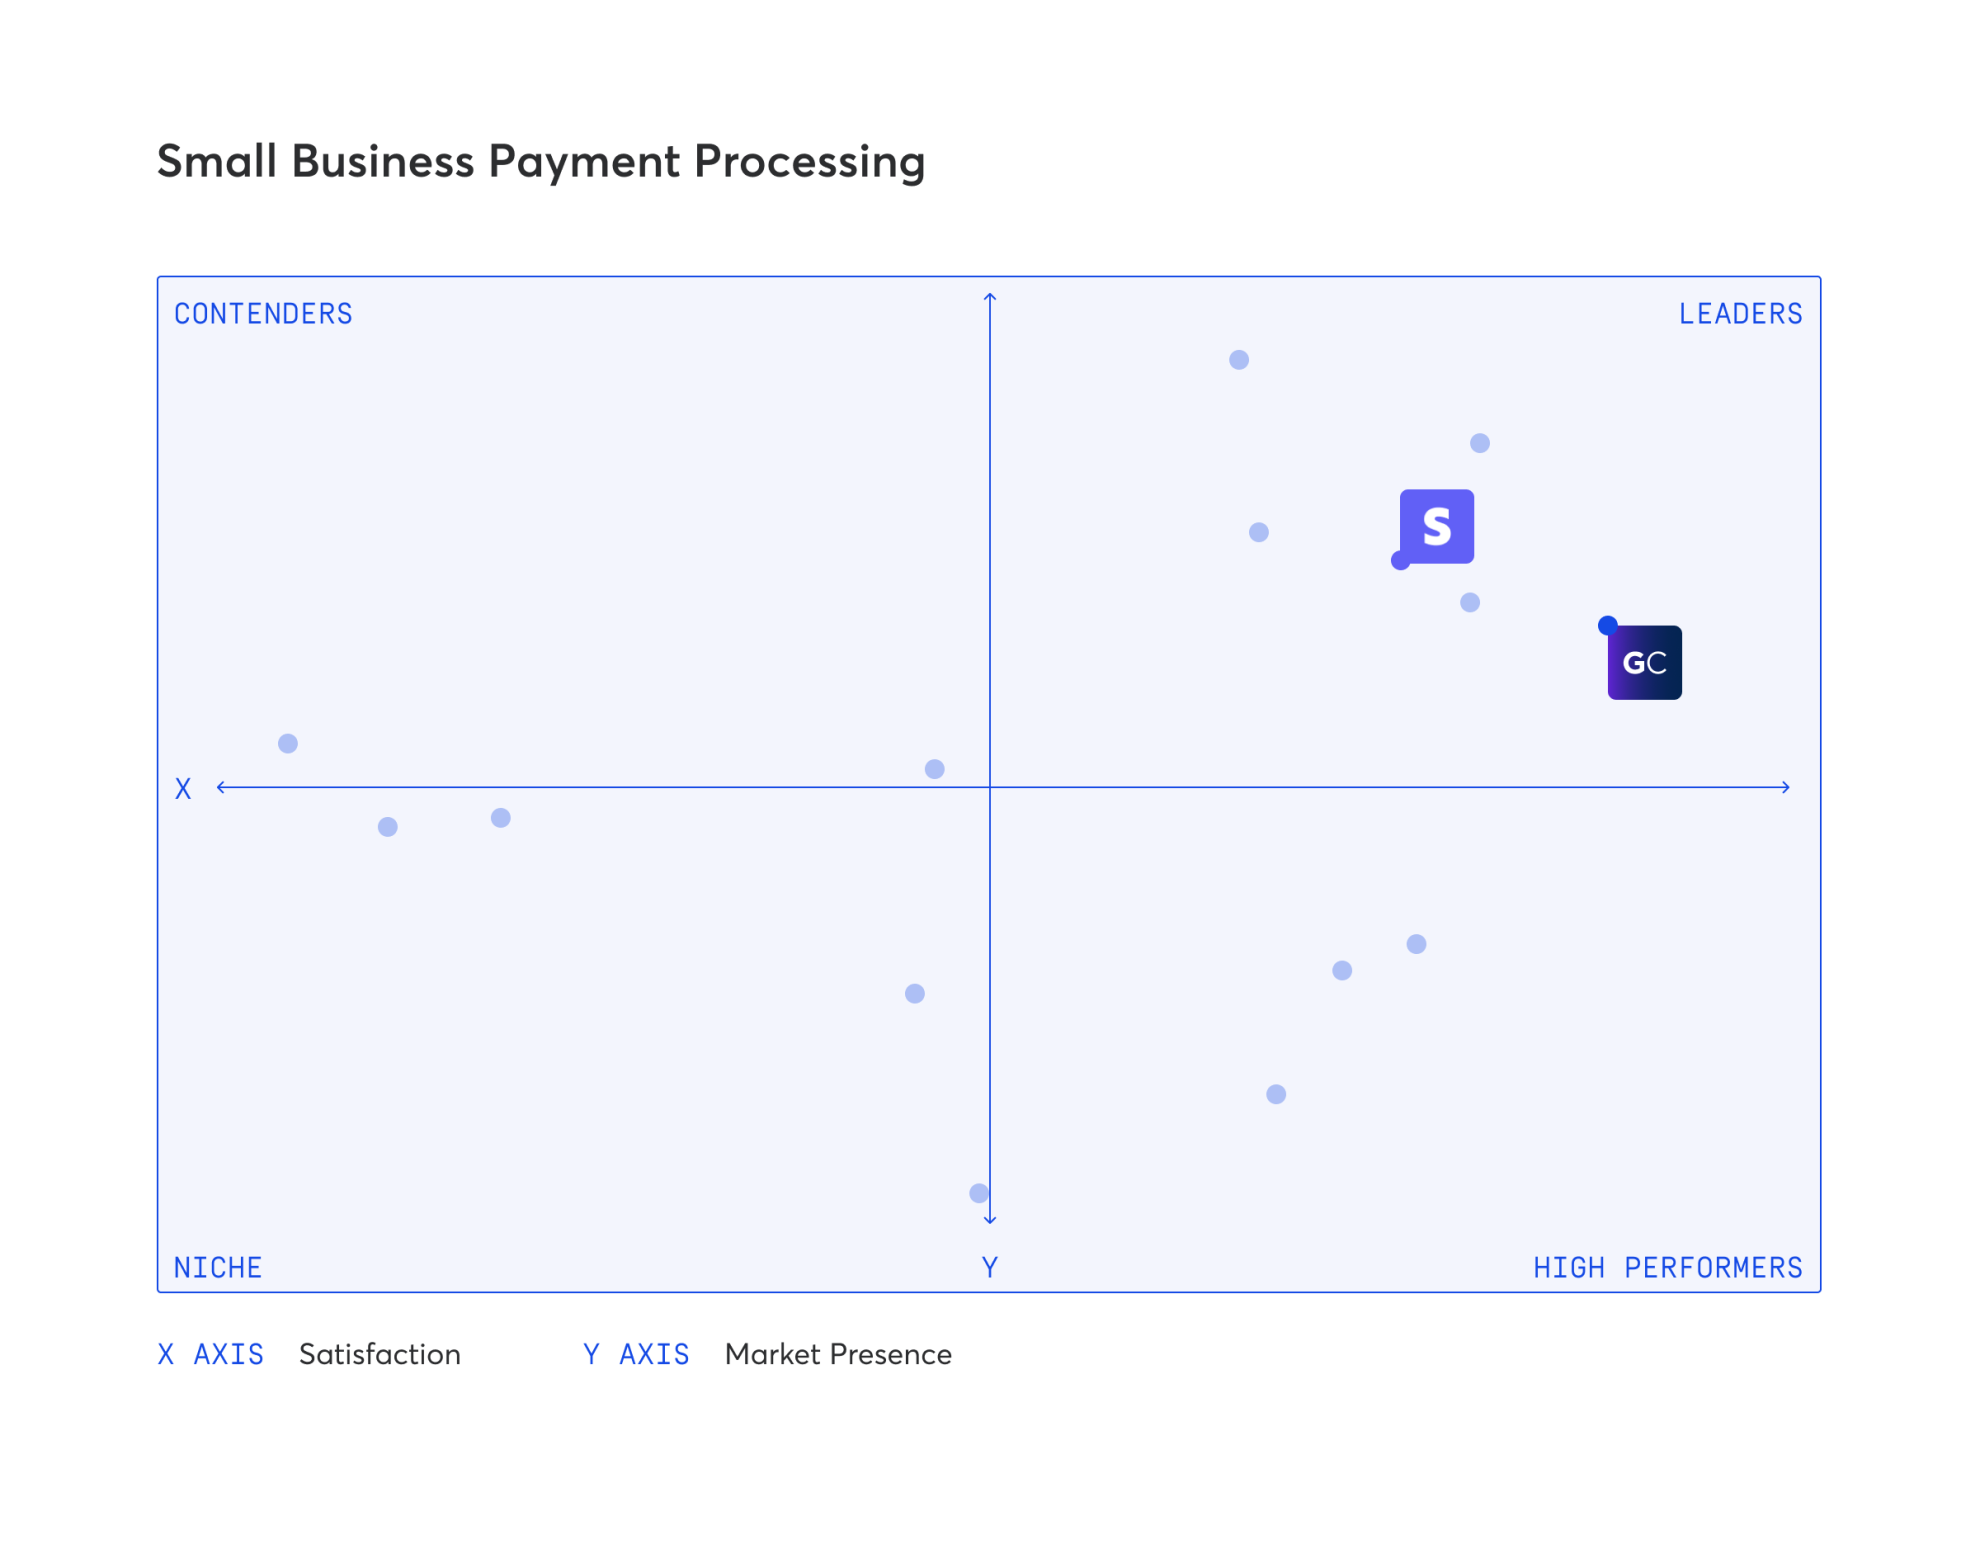 Small business payment processing leader